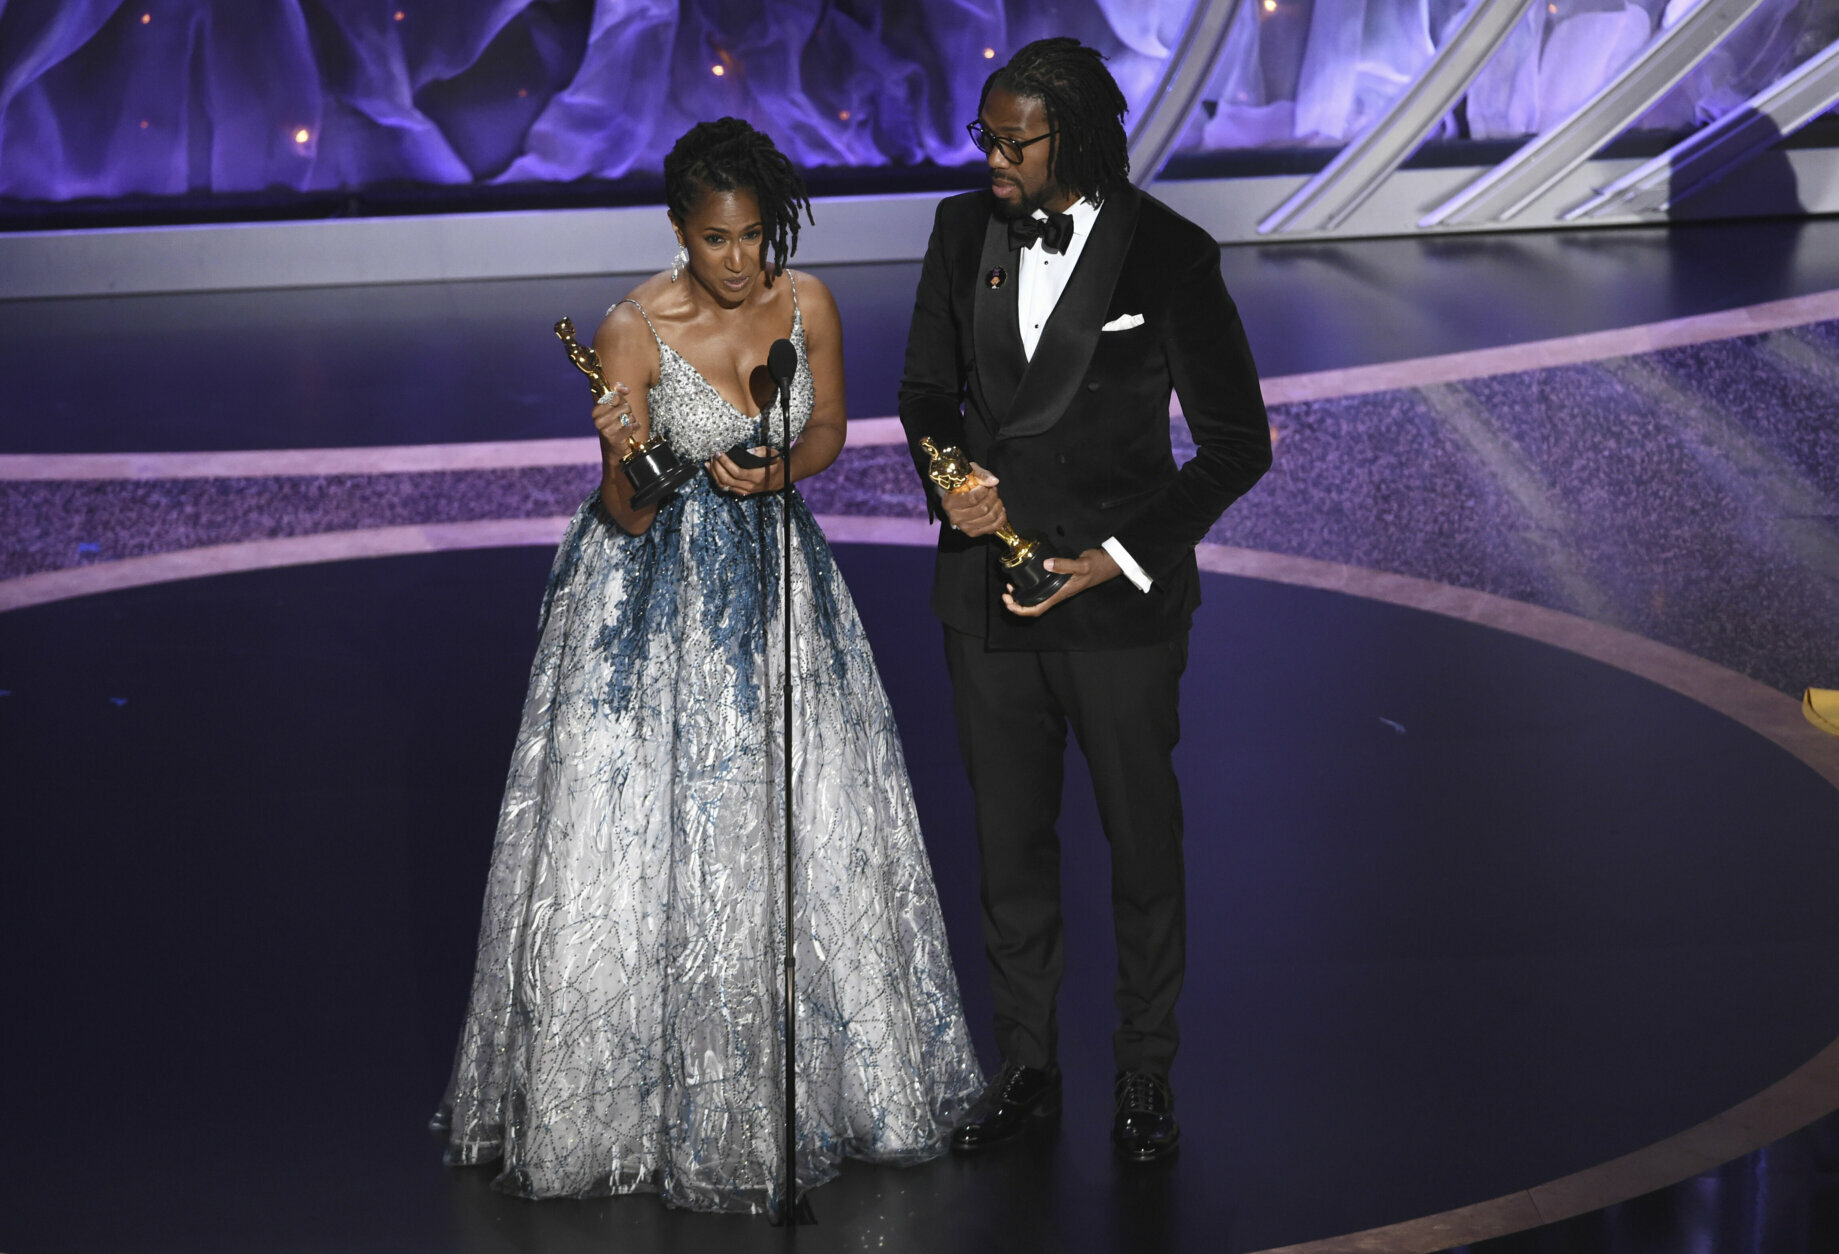 """Karen Rupert Toliver, left, and Matthew A. Cherry accept the award for best animated short film for """"Hair Love"""" at the Oscars on Sunday, Feb. 9, 2020, at the Dolby Theatre in Los Angeles. (AP Photo/Chris Pizzello)"""